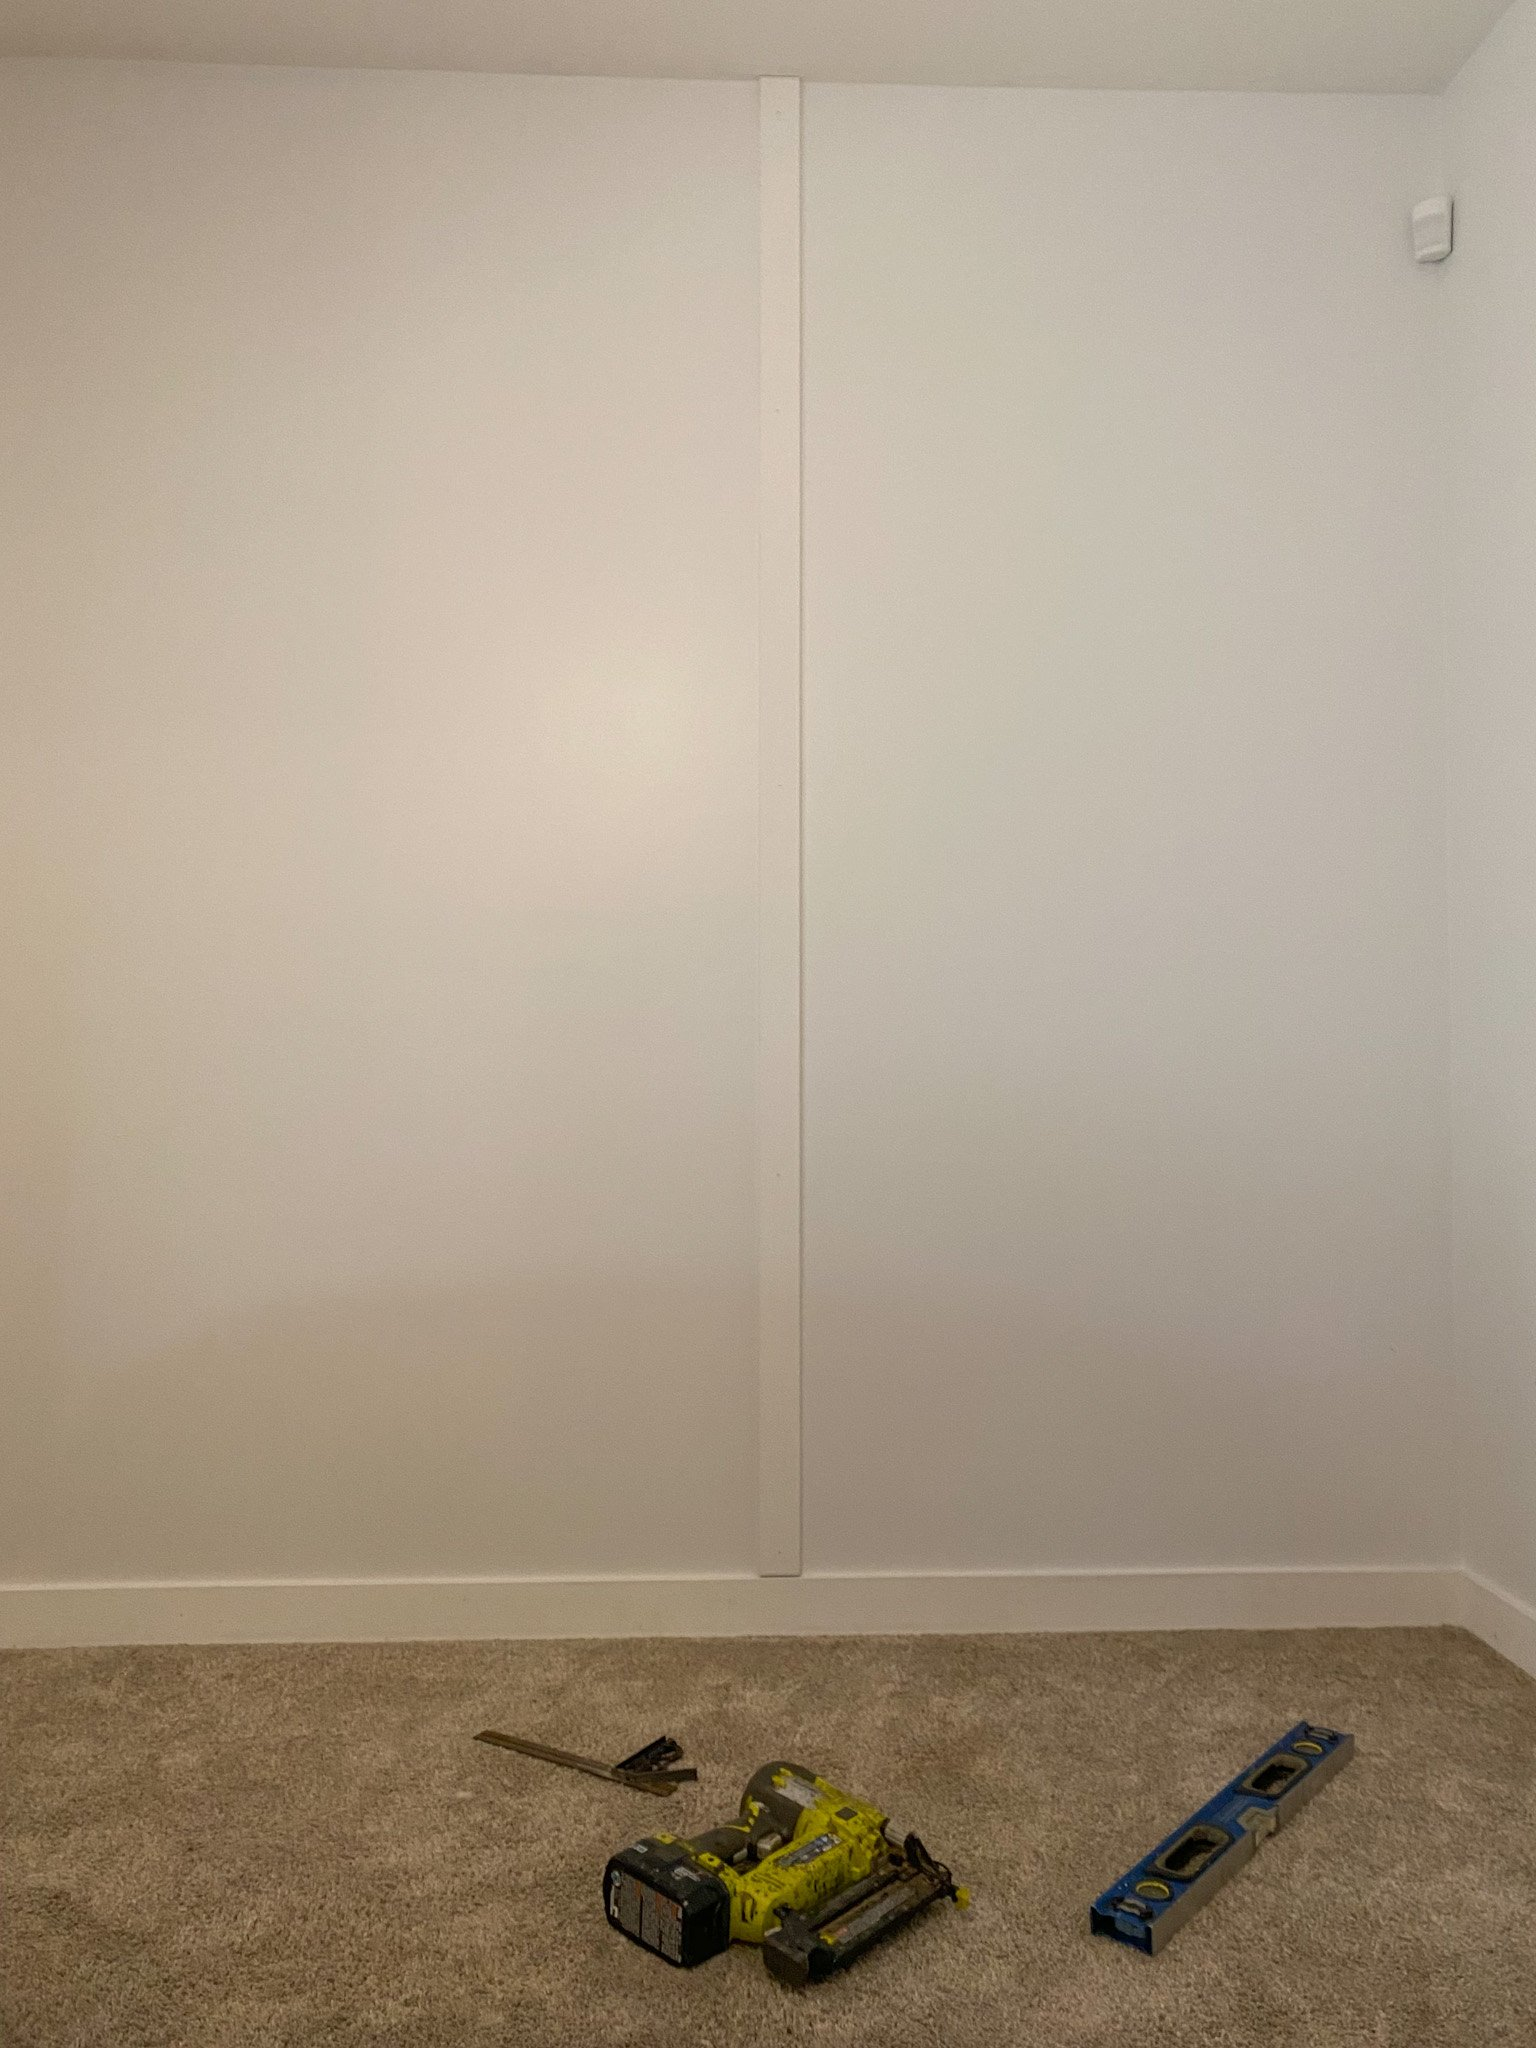 How to build your own Asymmetrical Wood Wall for Under 45.00! Super easy DIY that will make a huge impact in any room. Takes under six hours!